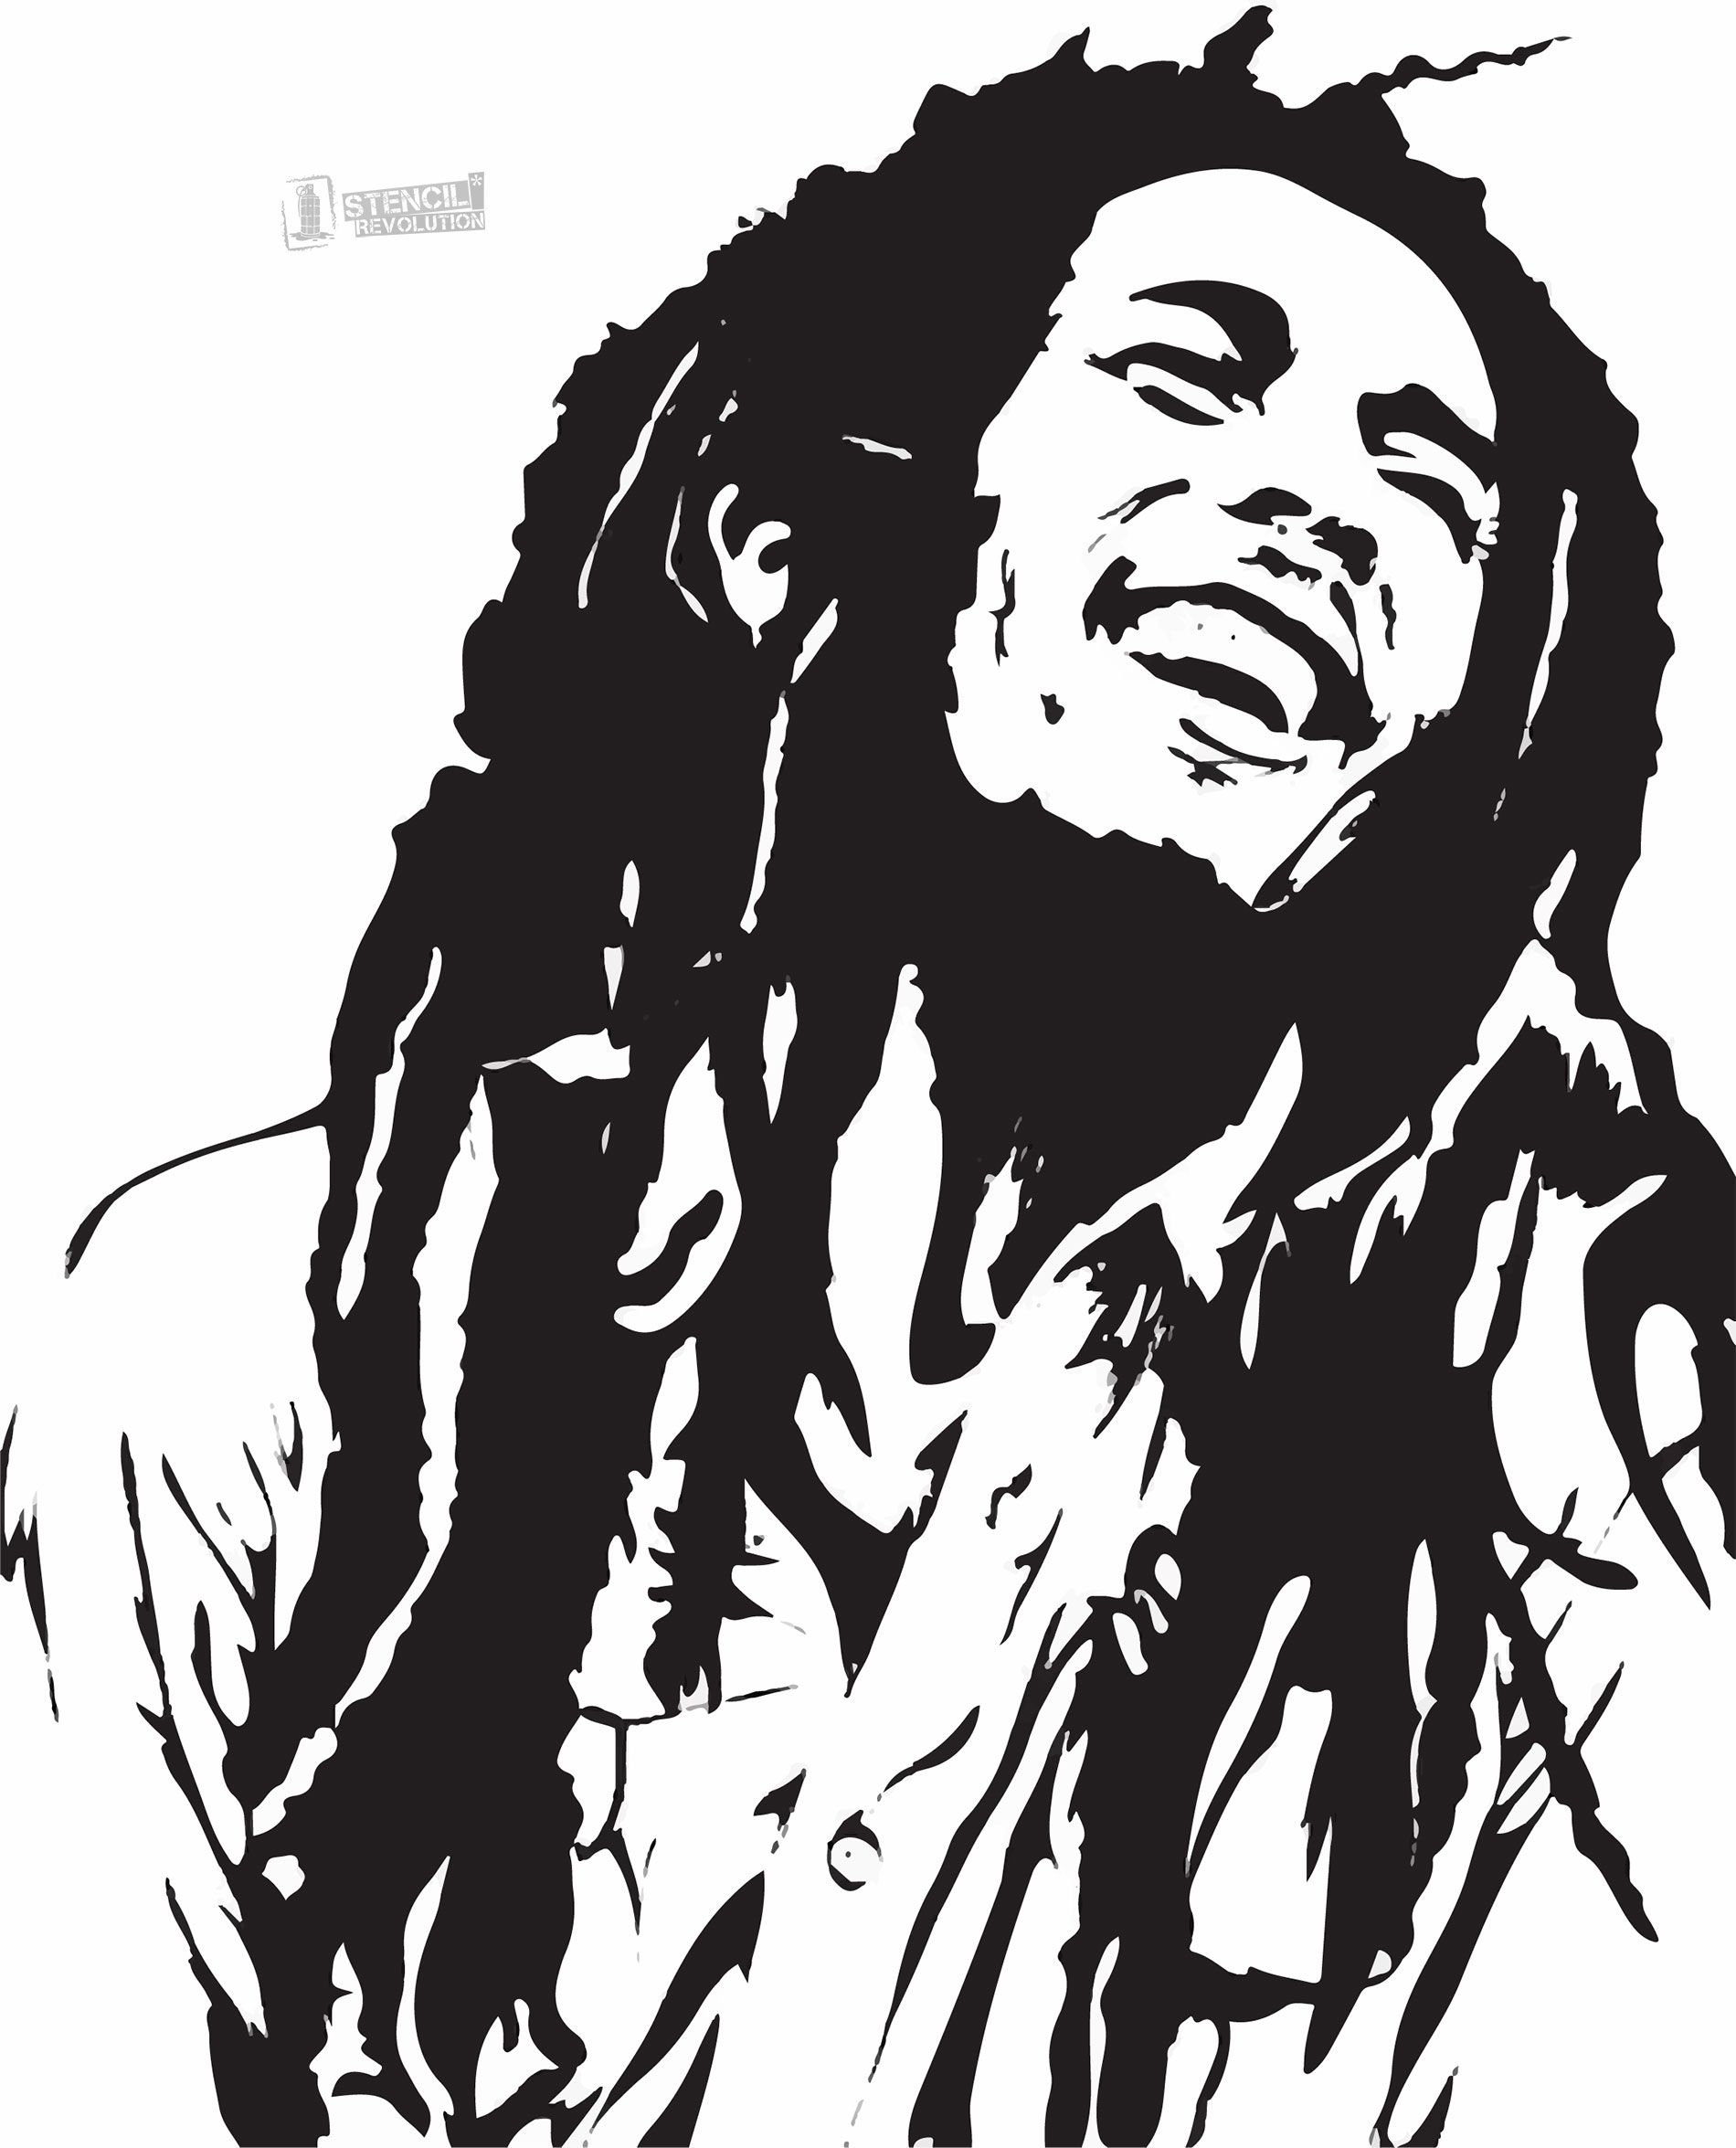 Better Detail With Spiral Blades Bob Marley Art Bob Marley Pop Art